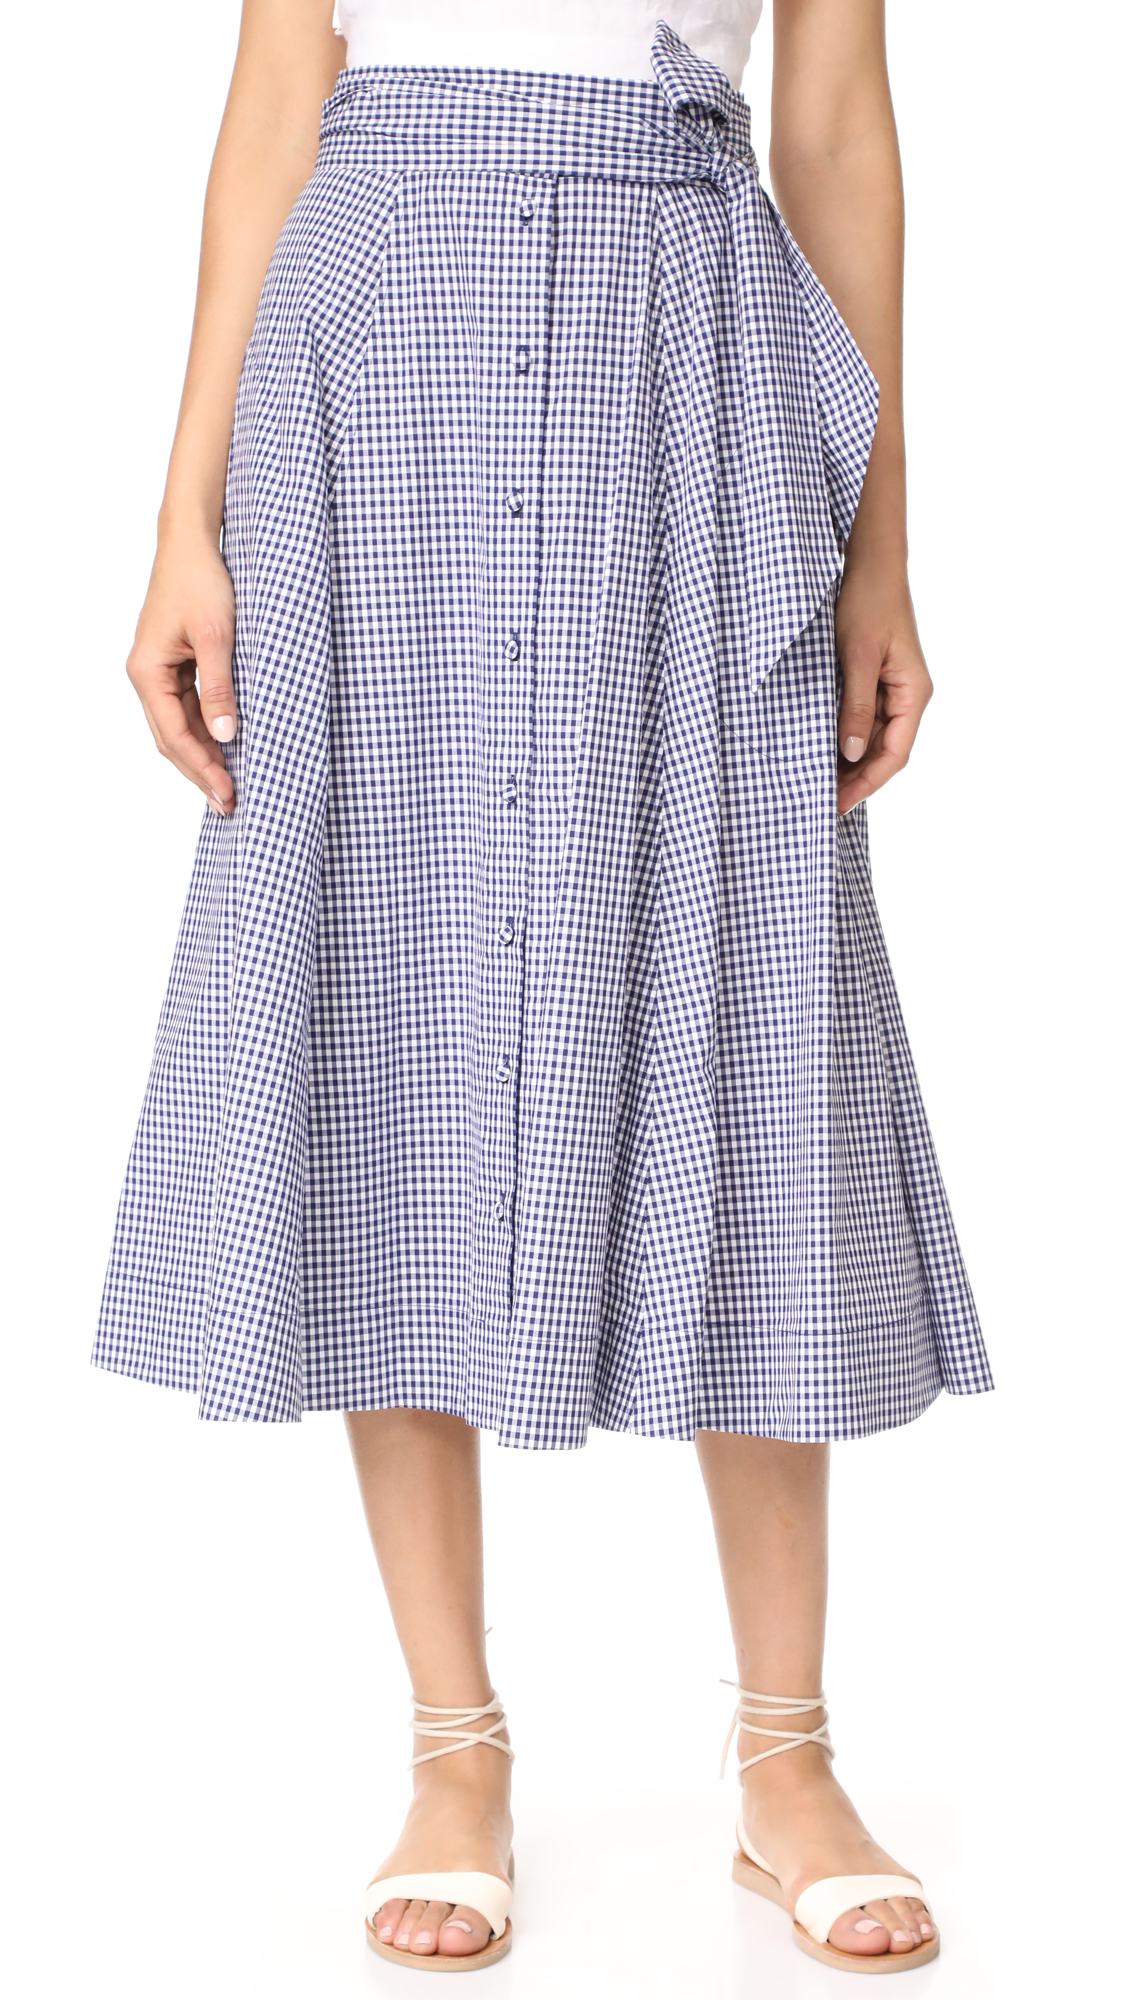 Alexis Hadley Skirt - Navy Gingham